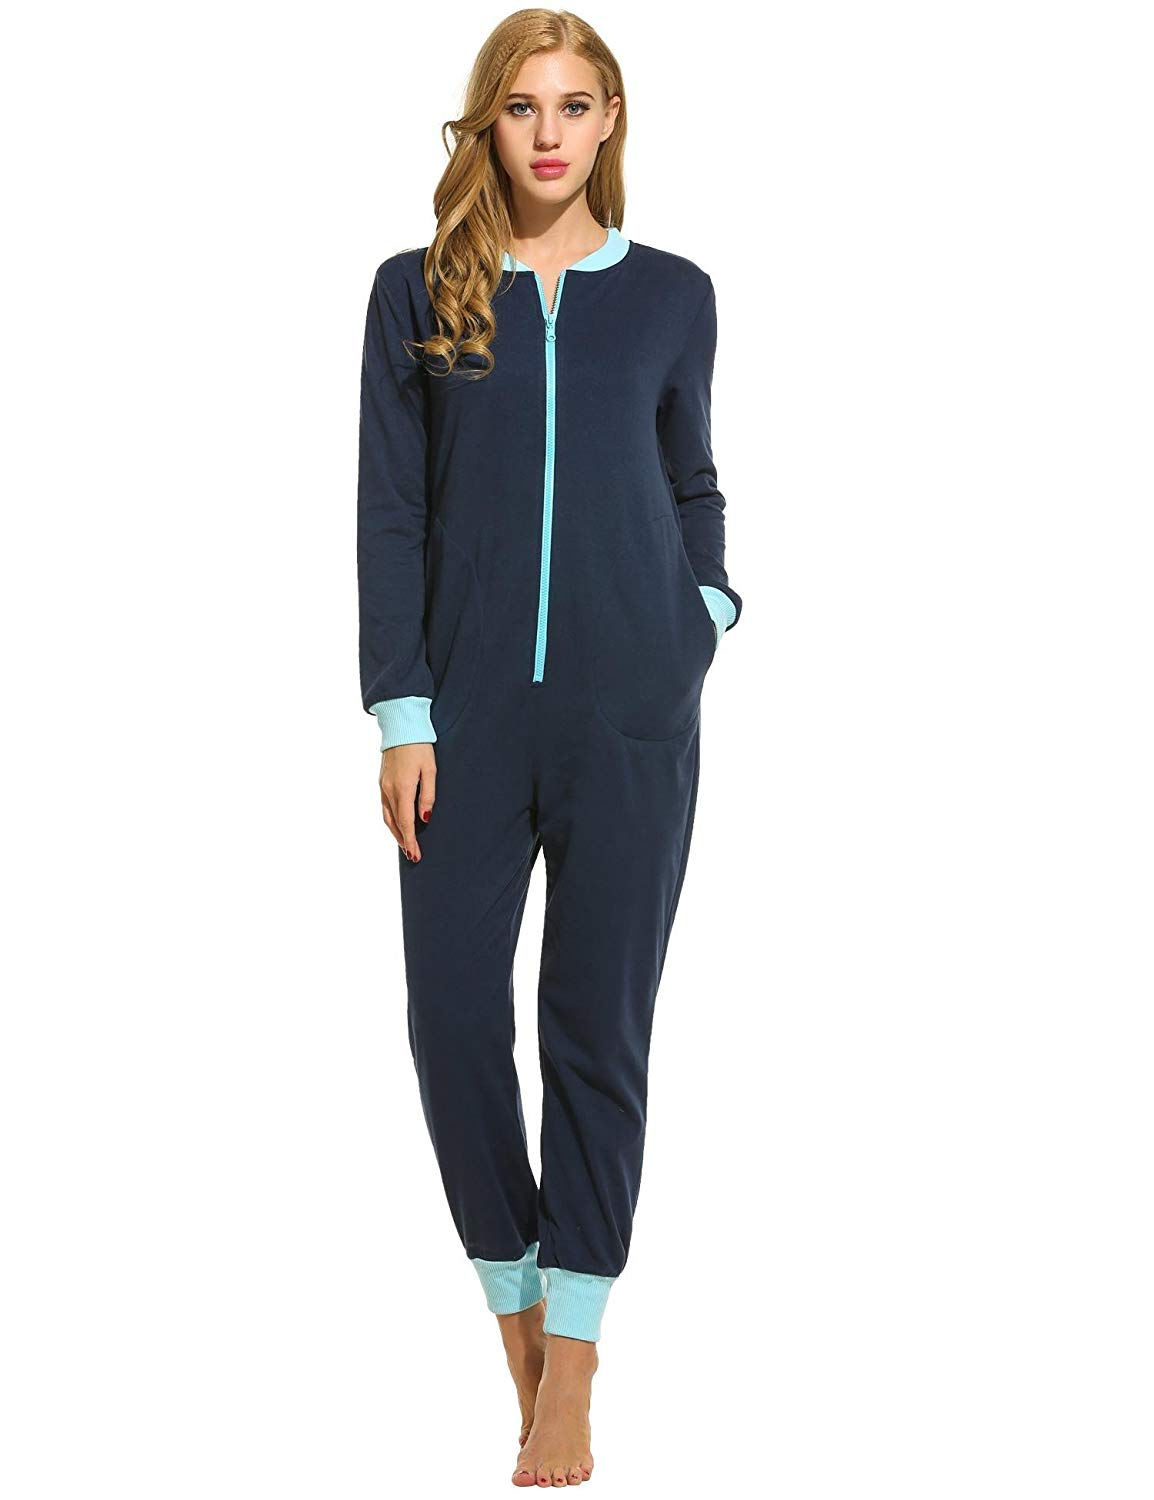 7b516bbebc8b Get Quotations · Ekouaer Women s Jumpsuit One Piece Non Footed Pajama  Playsuit